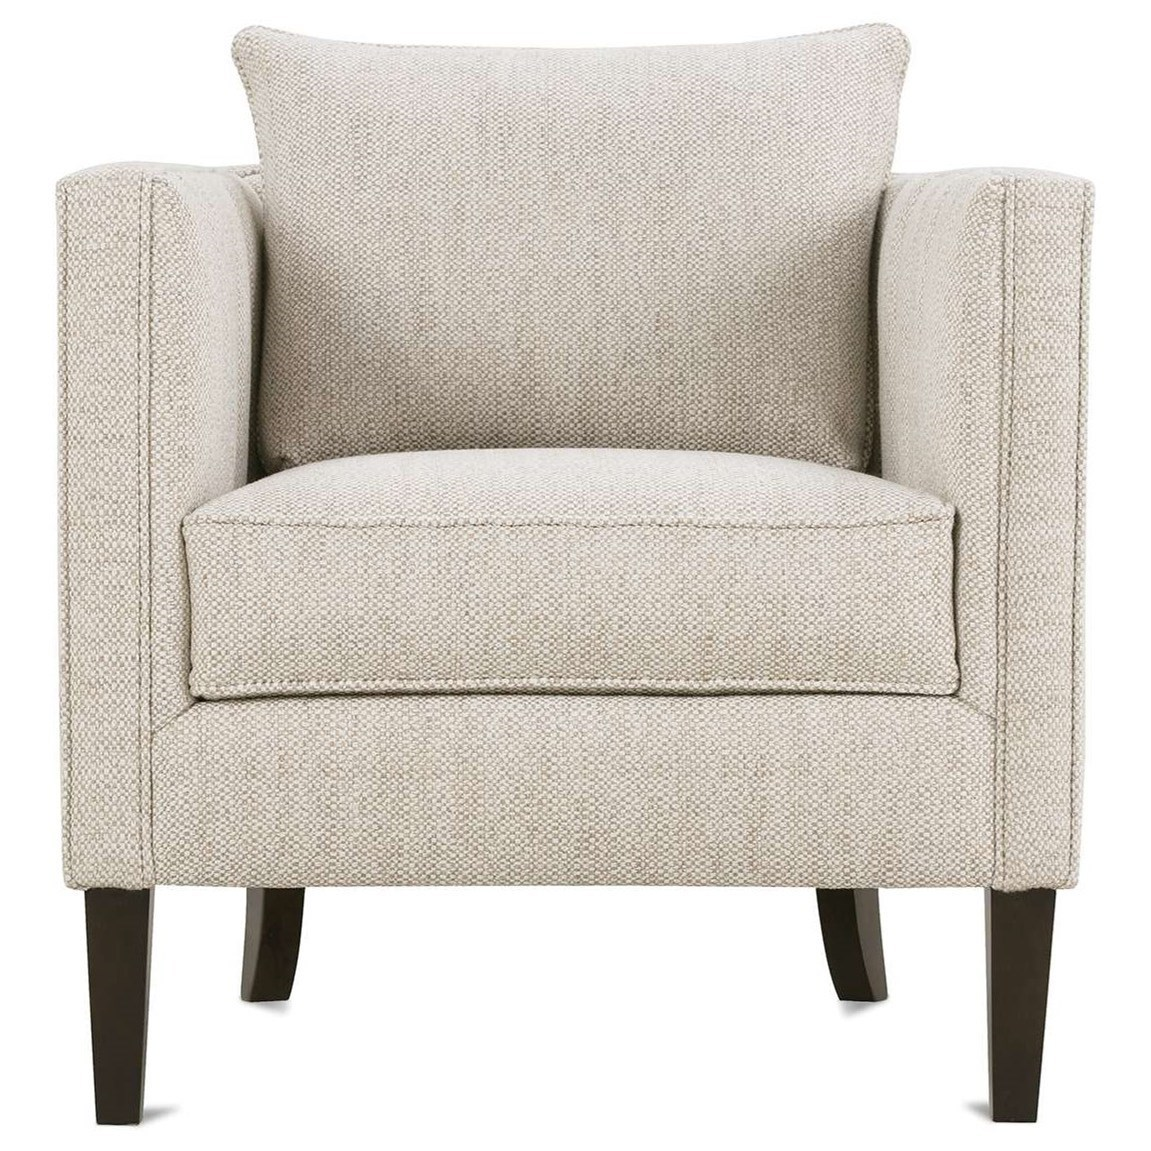 Kitt Upholstered Chair by Rowe at Crowley Furniture & Mattress